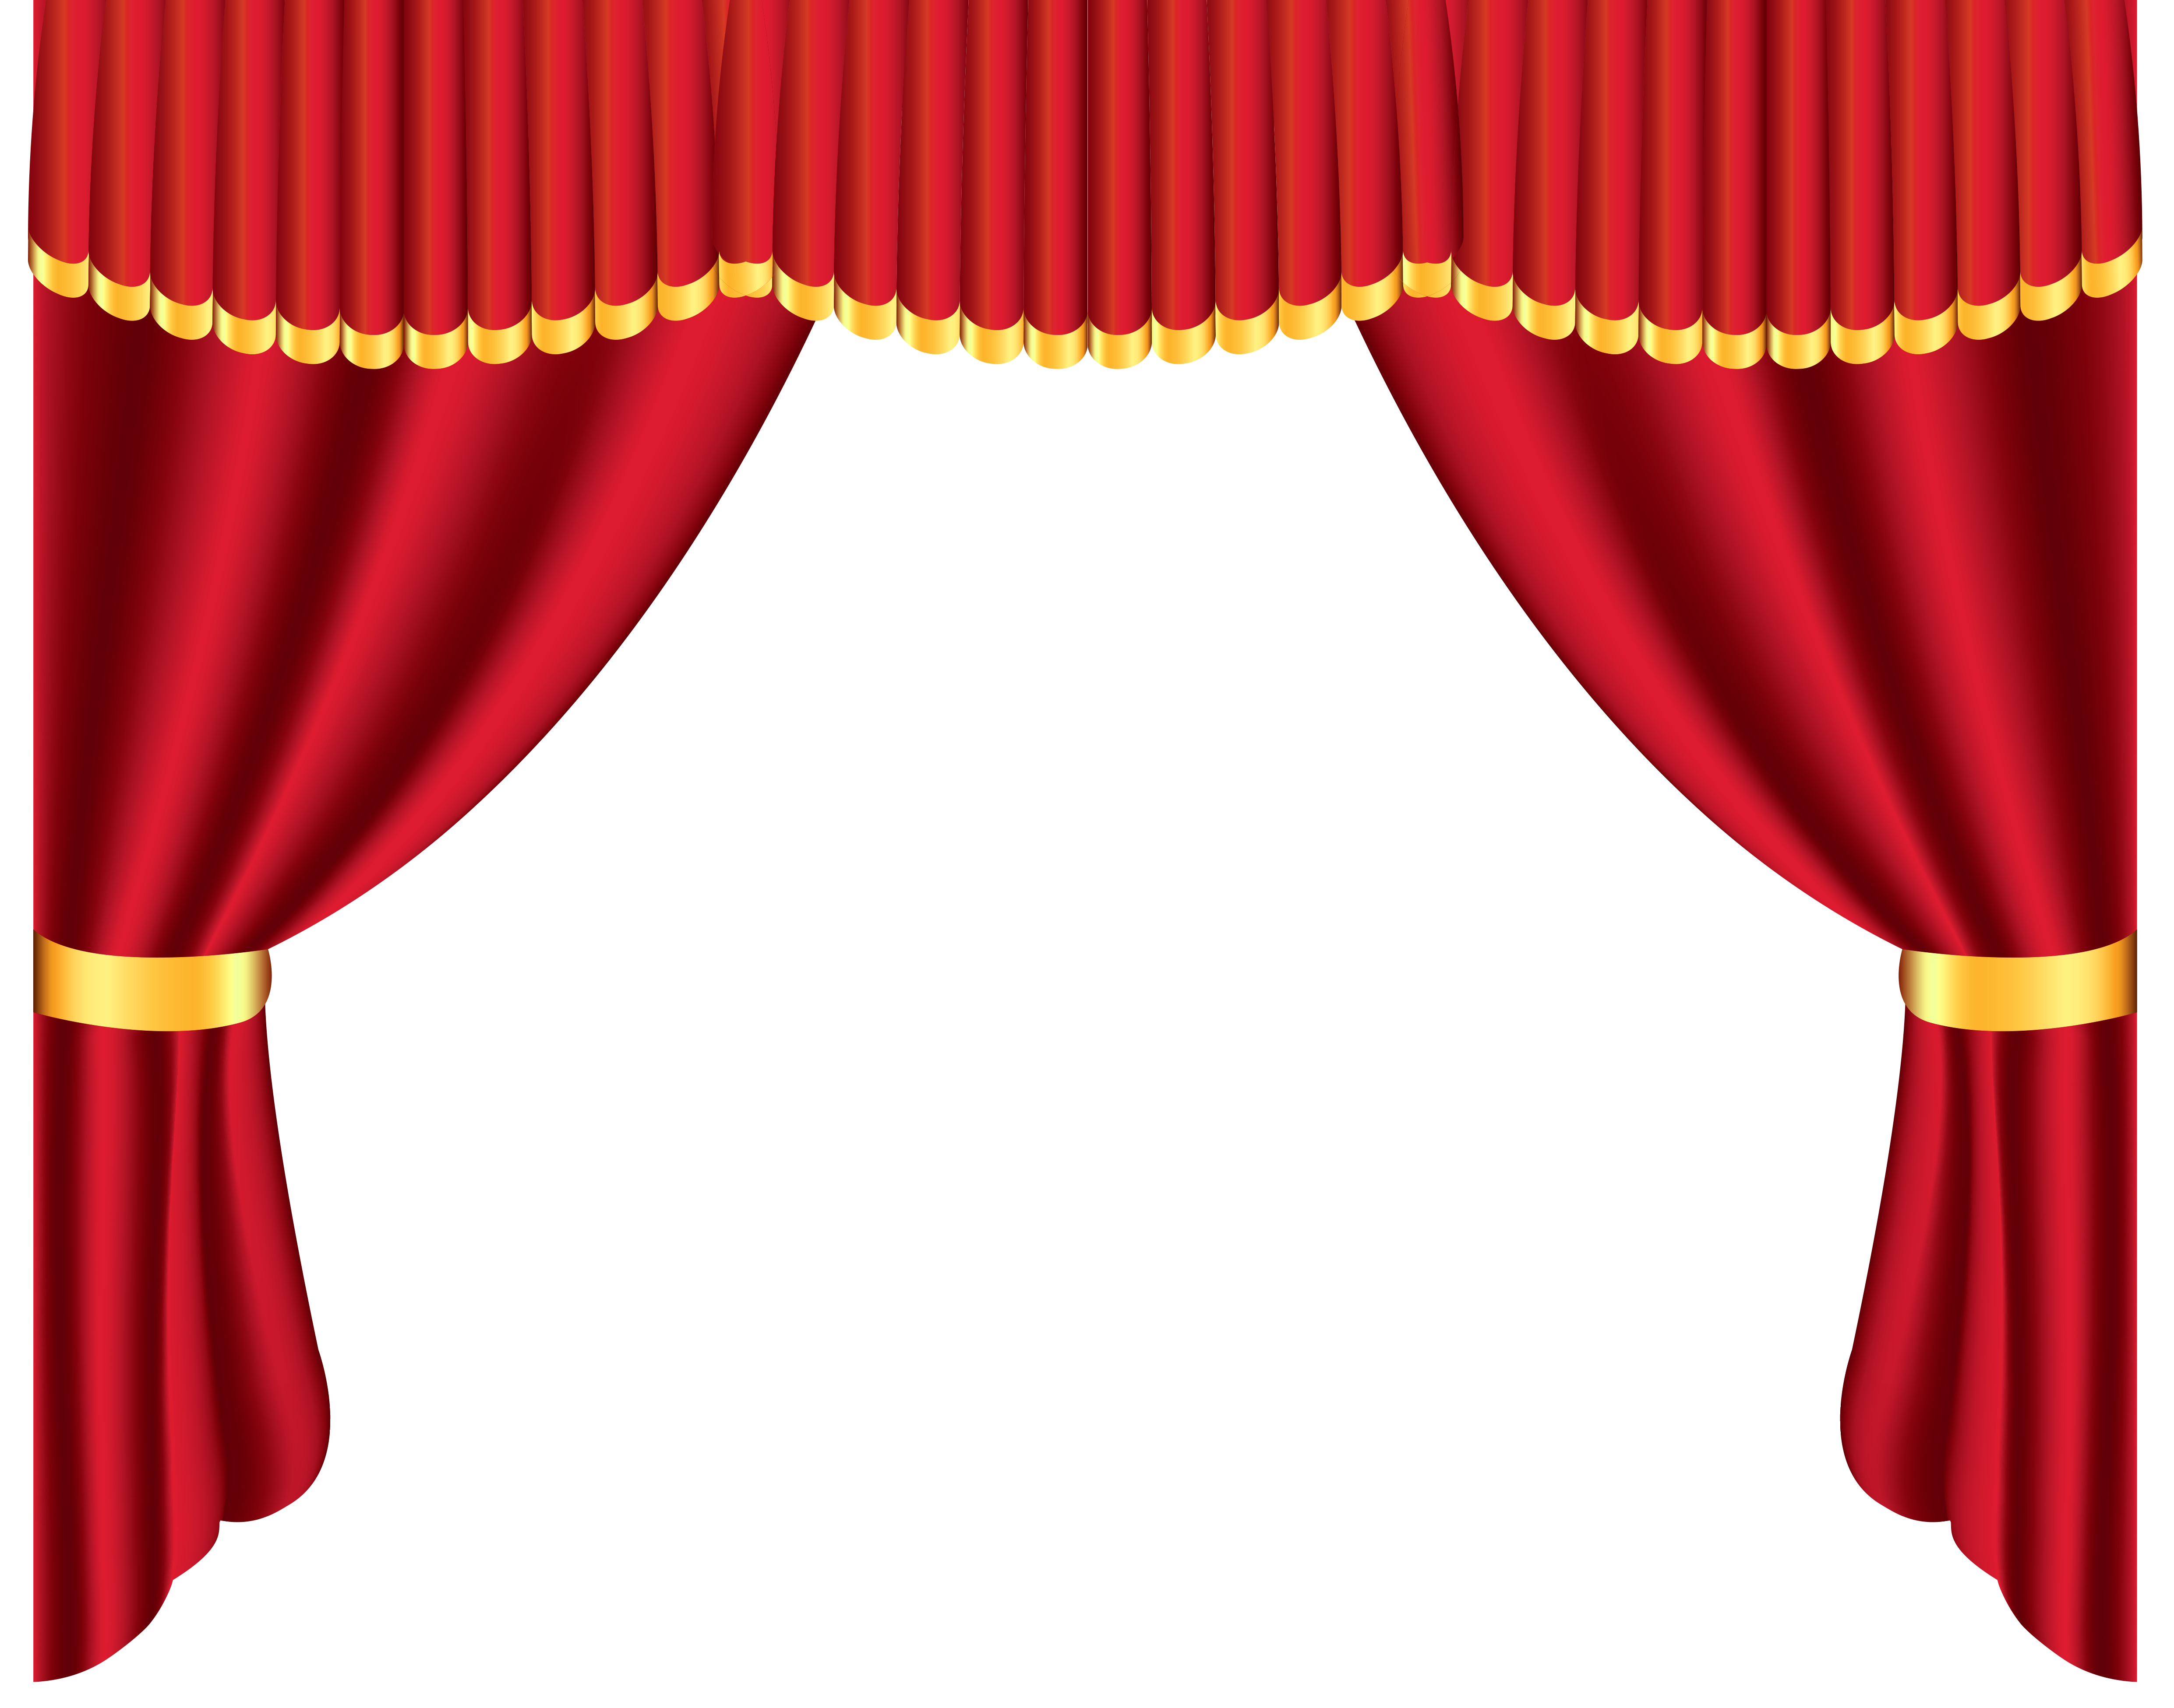 Transparent Red Curtain Png Clipart Gallery Yopriceville High Quality Images And Transparent Png Free Clipart Red Curtains Curtain Decor Curtains